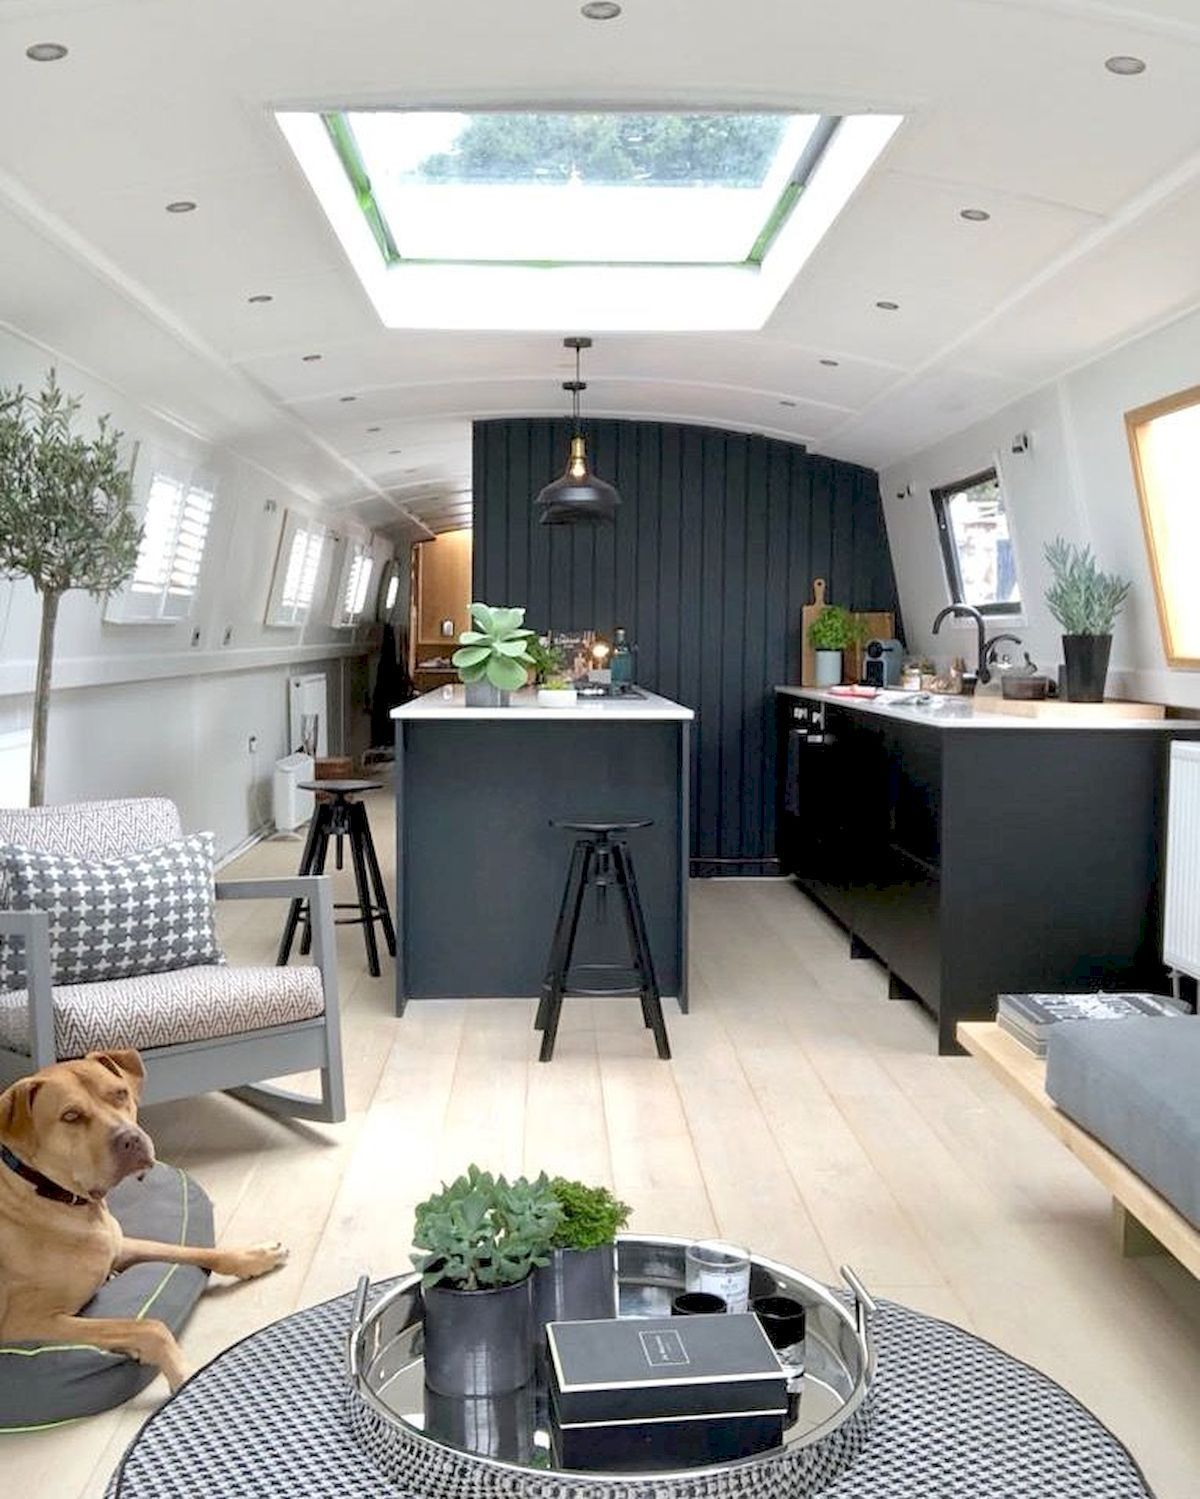 13 RV Trailer Remodels Ideas You Need to See